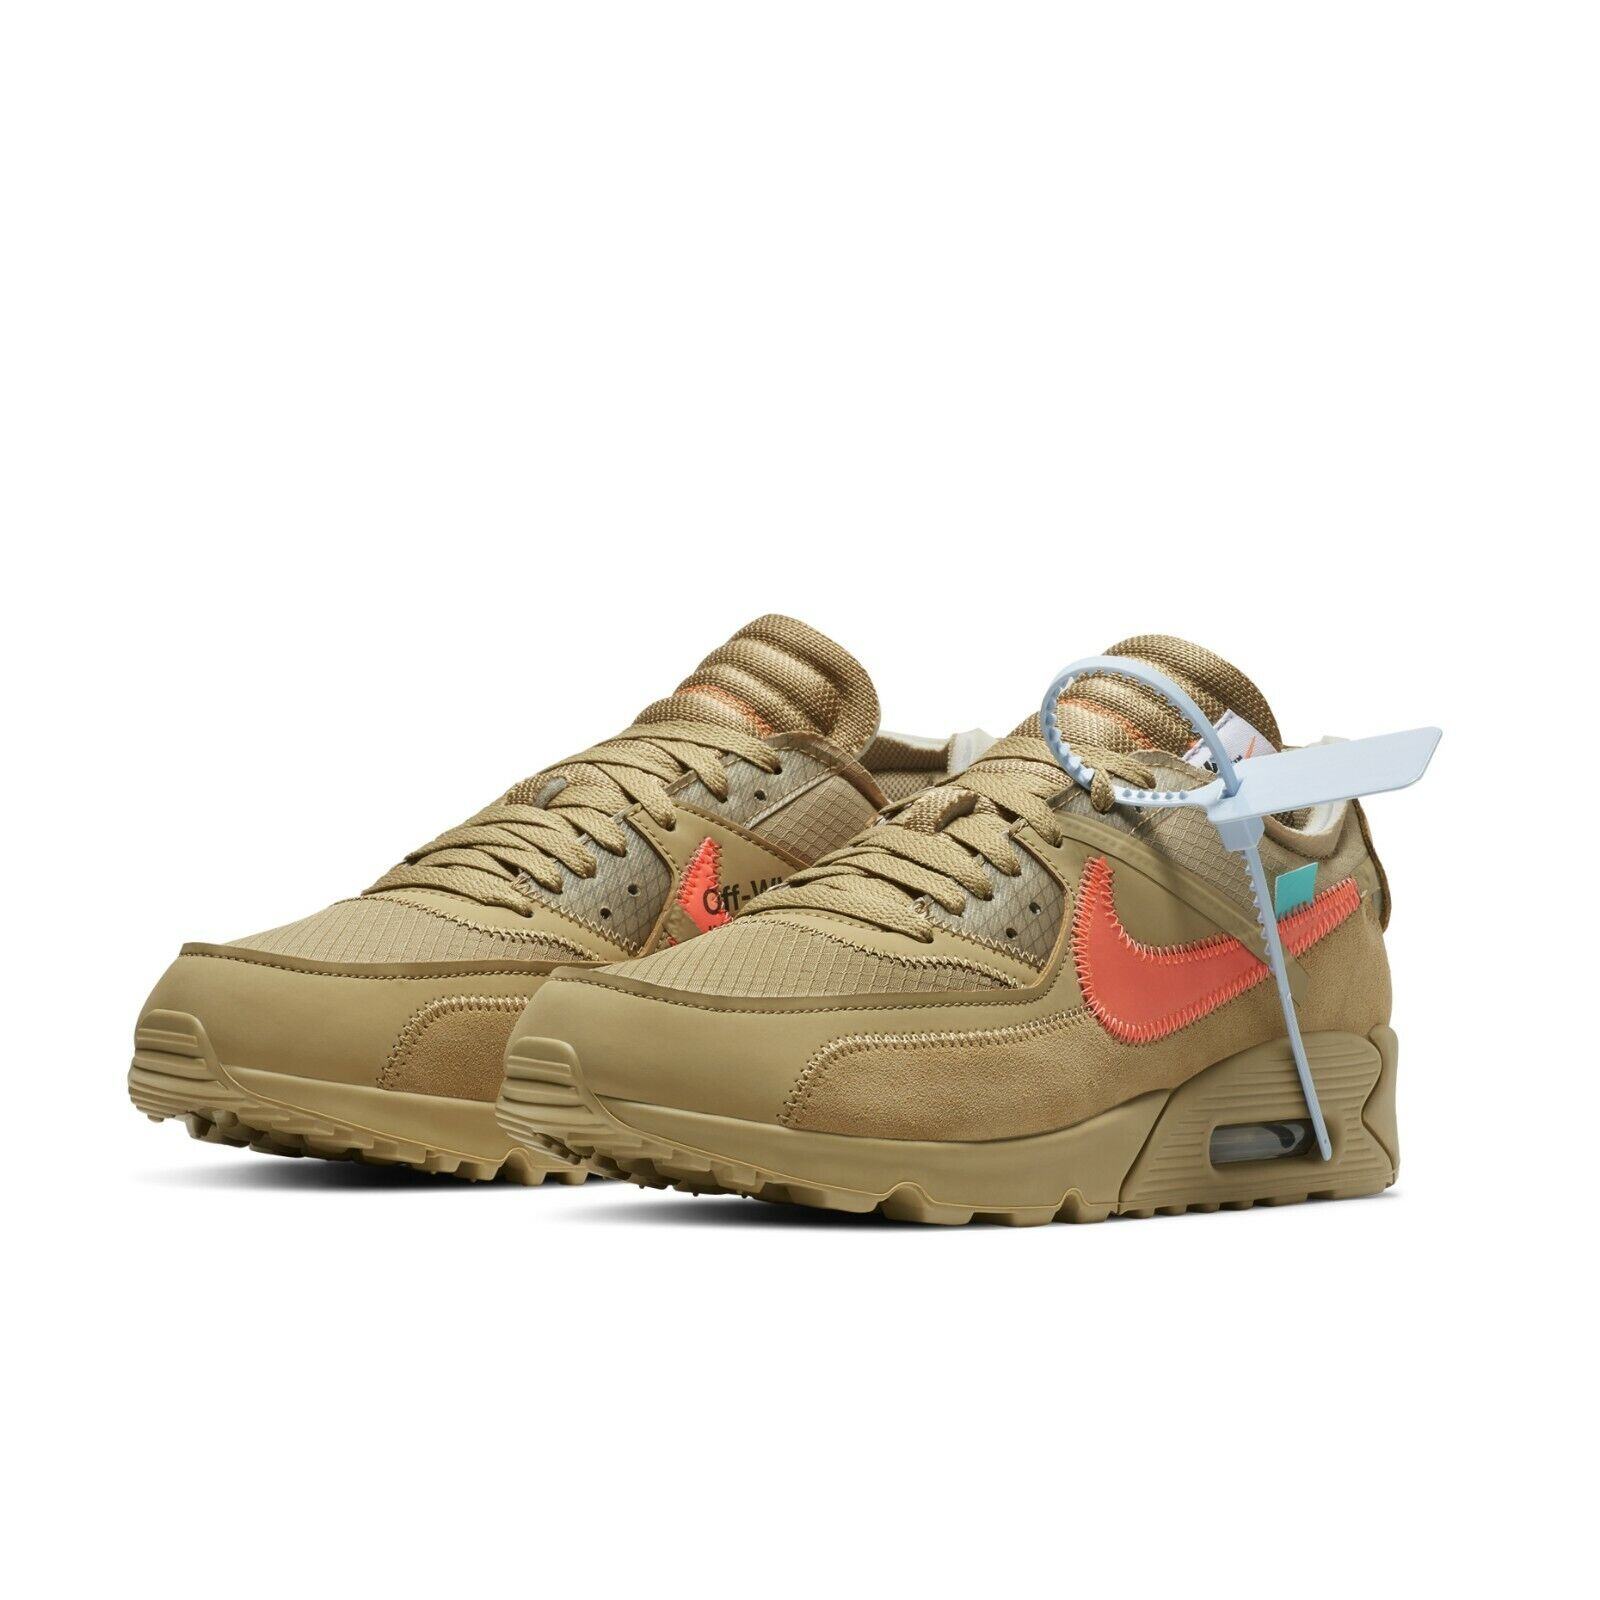 13b9f52511a1 OFF-WHITE x Nike Air Max 90 Desert Ore Beige THE TEN 10 Virgil Abloh  AA7293-200